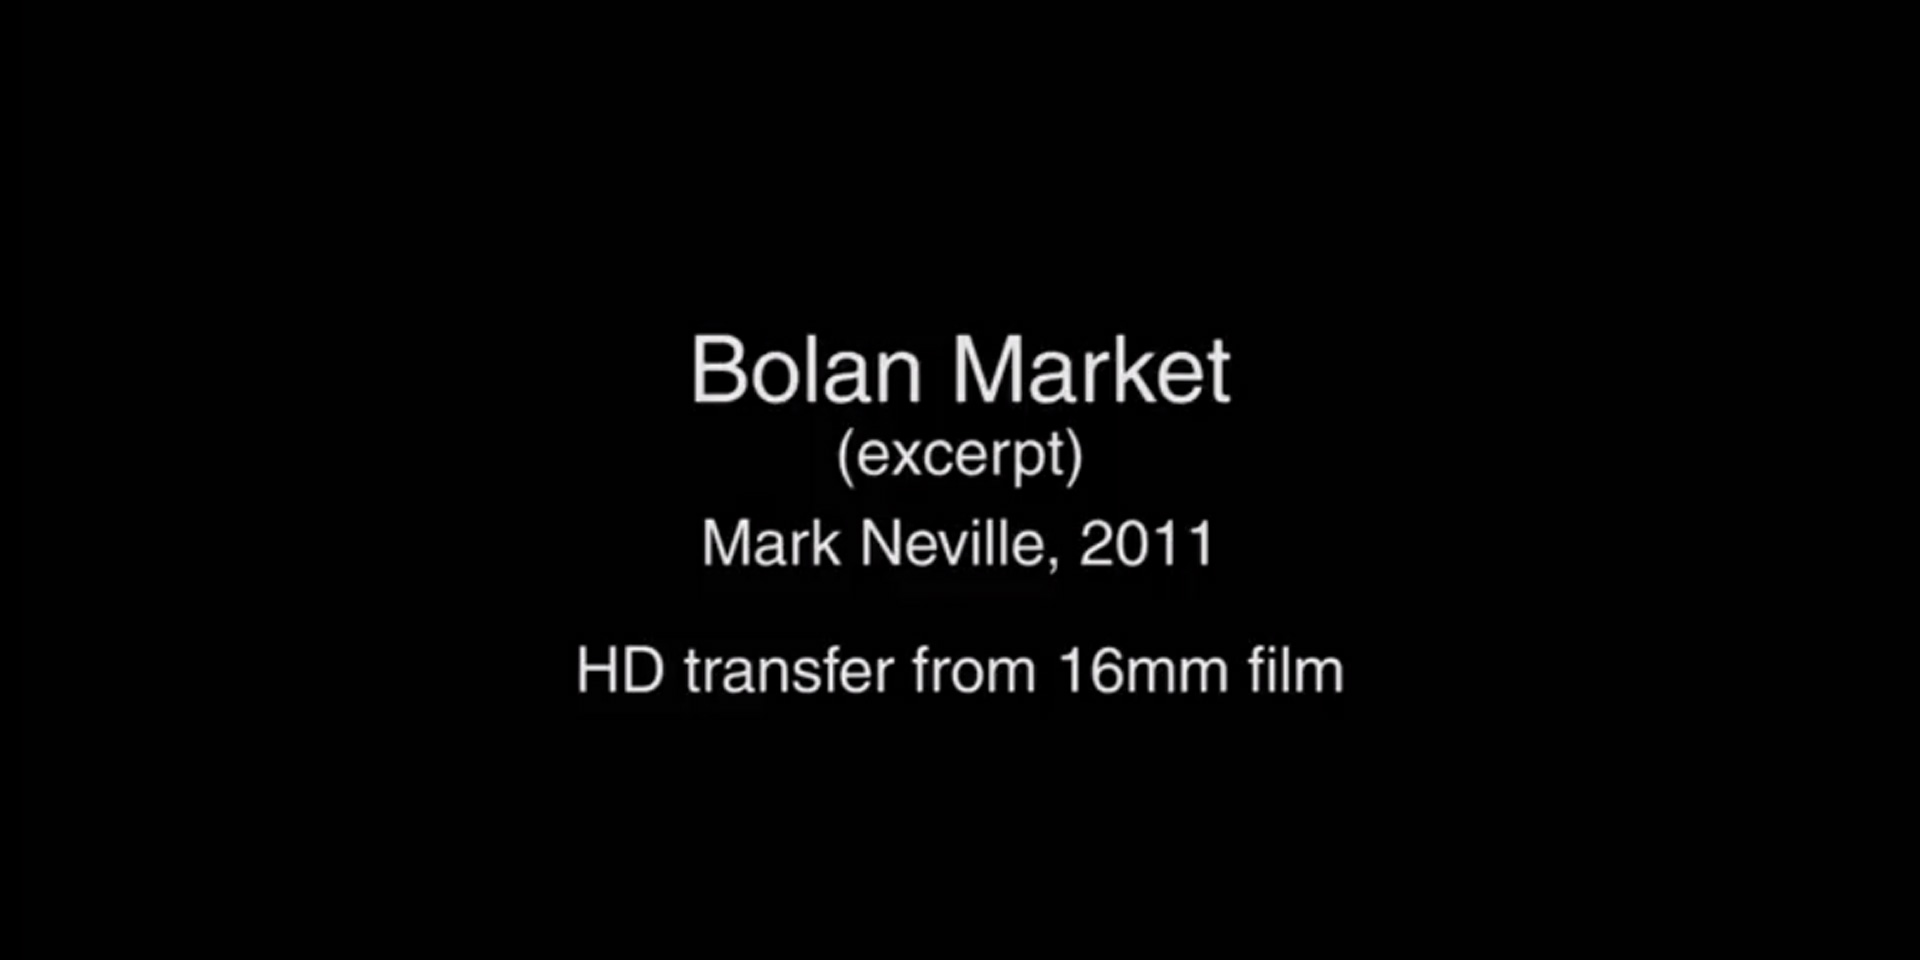 Excerpt from 'Bolan Market', by Mark Neville, 2011